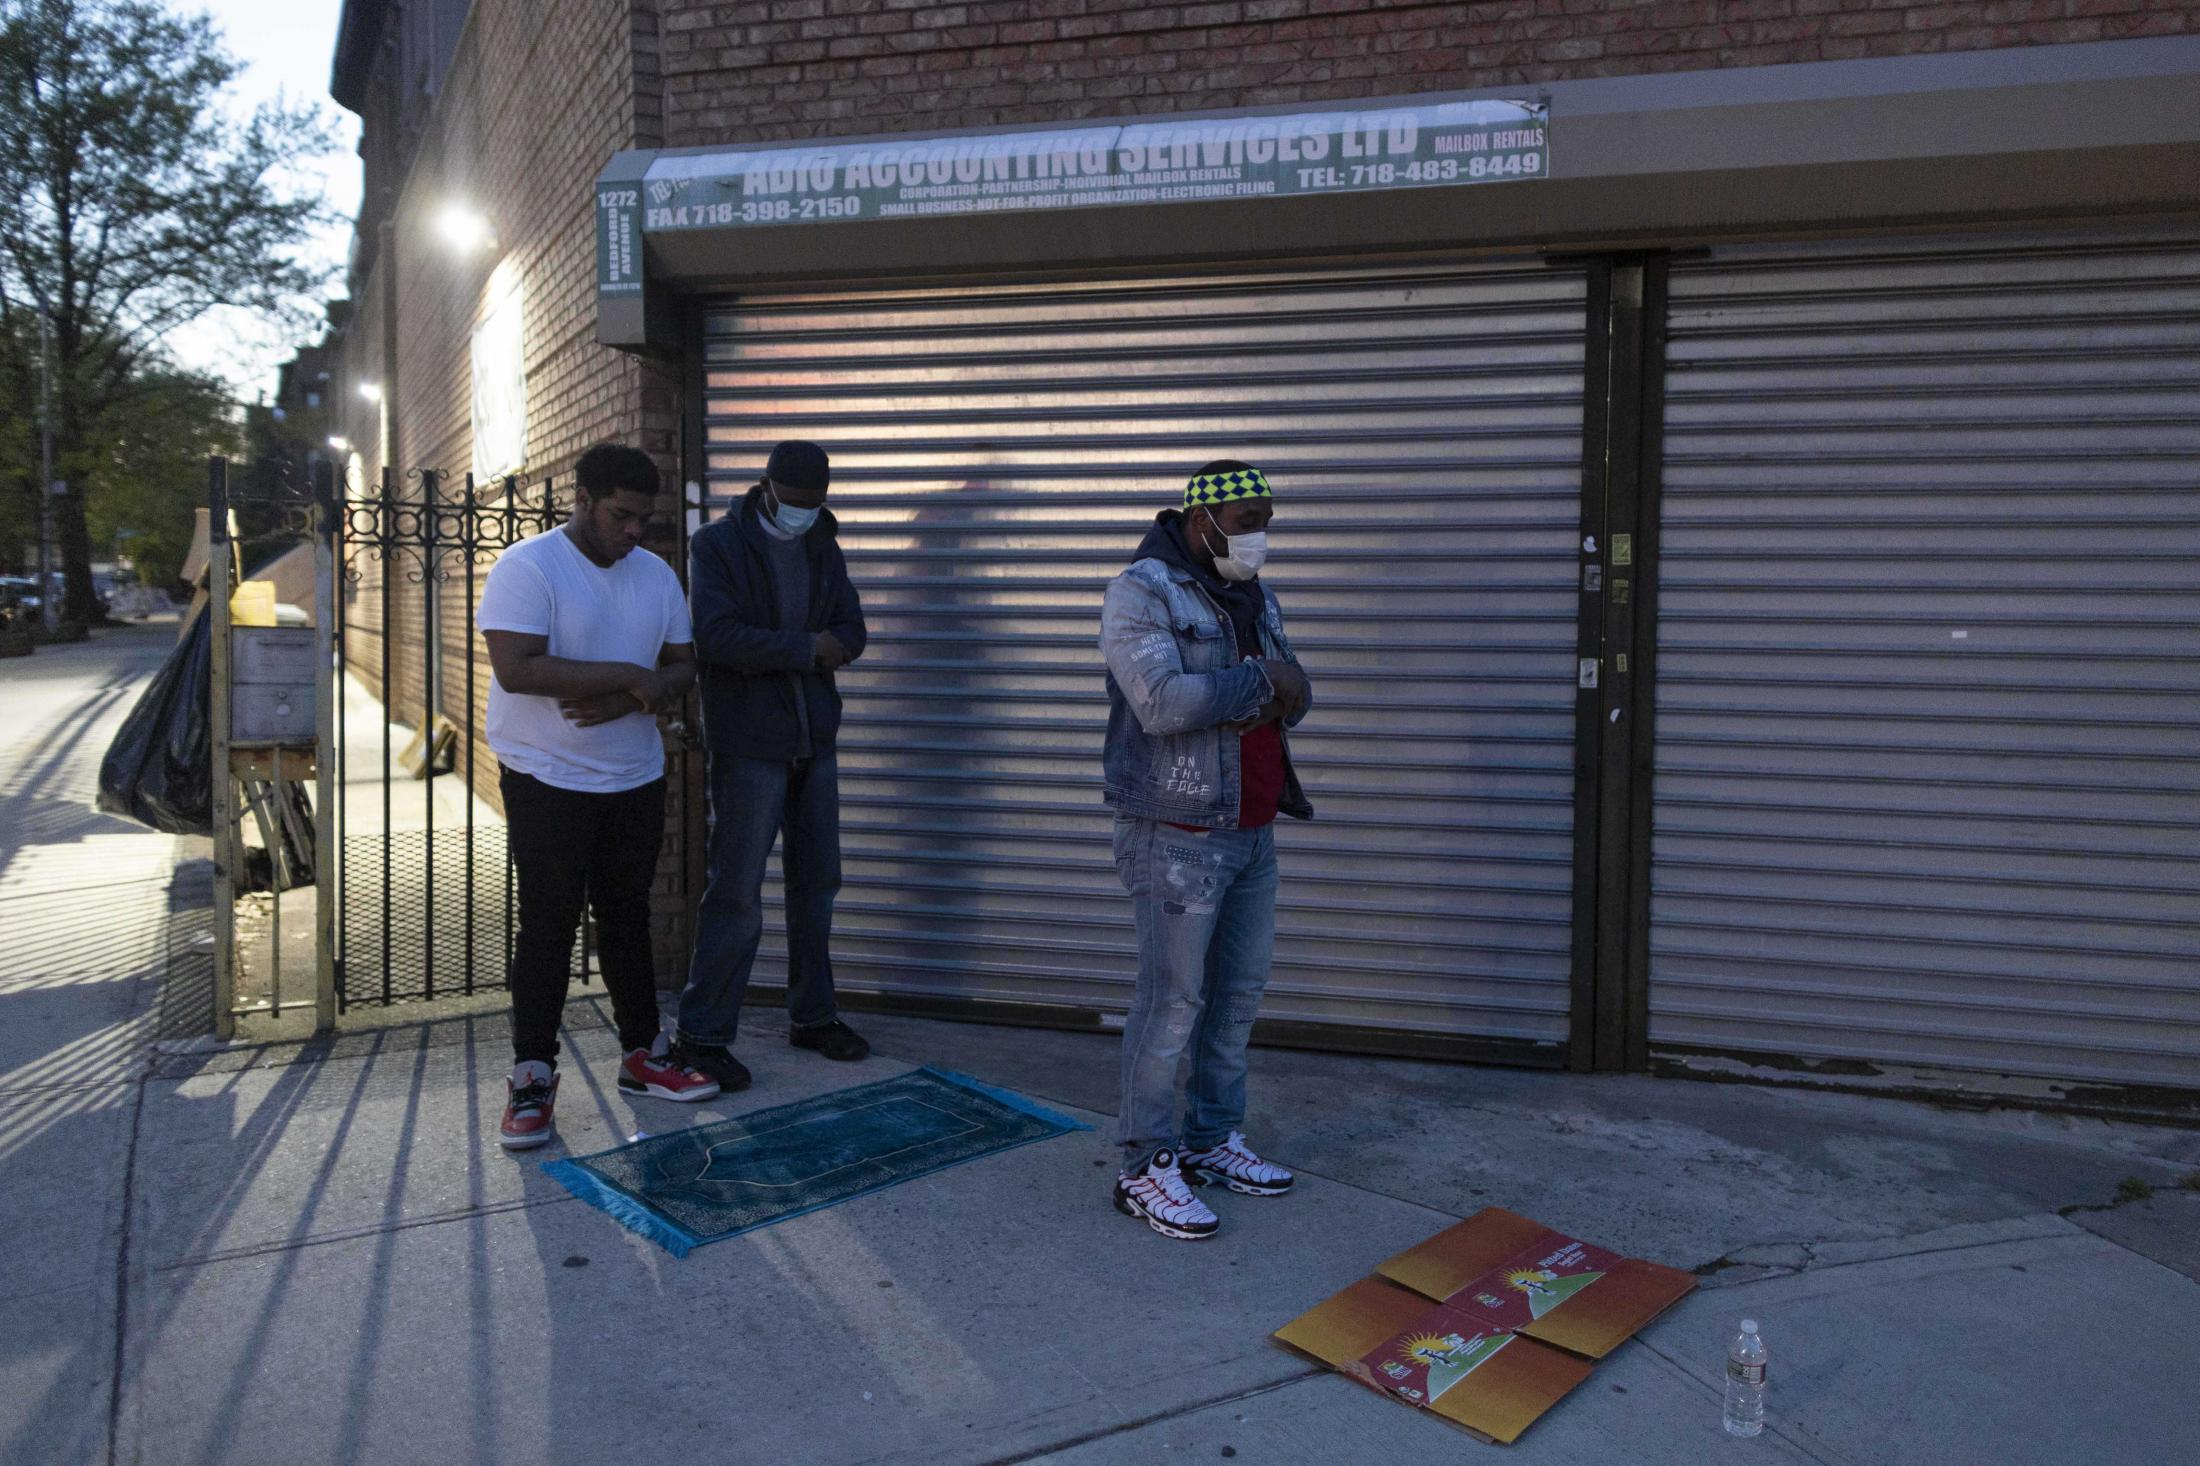 A group of muslim men praying Maghrib sunsit prayer after breaking their fast in front of At-Taqwa Mosque as the Mosque remains closed to public due to the Pandemic, Brooklyn, New York.